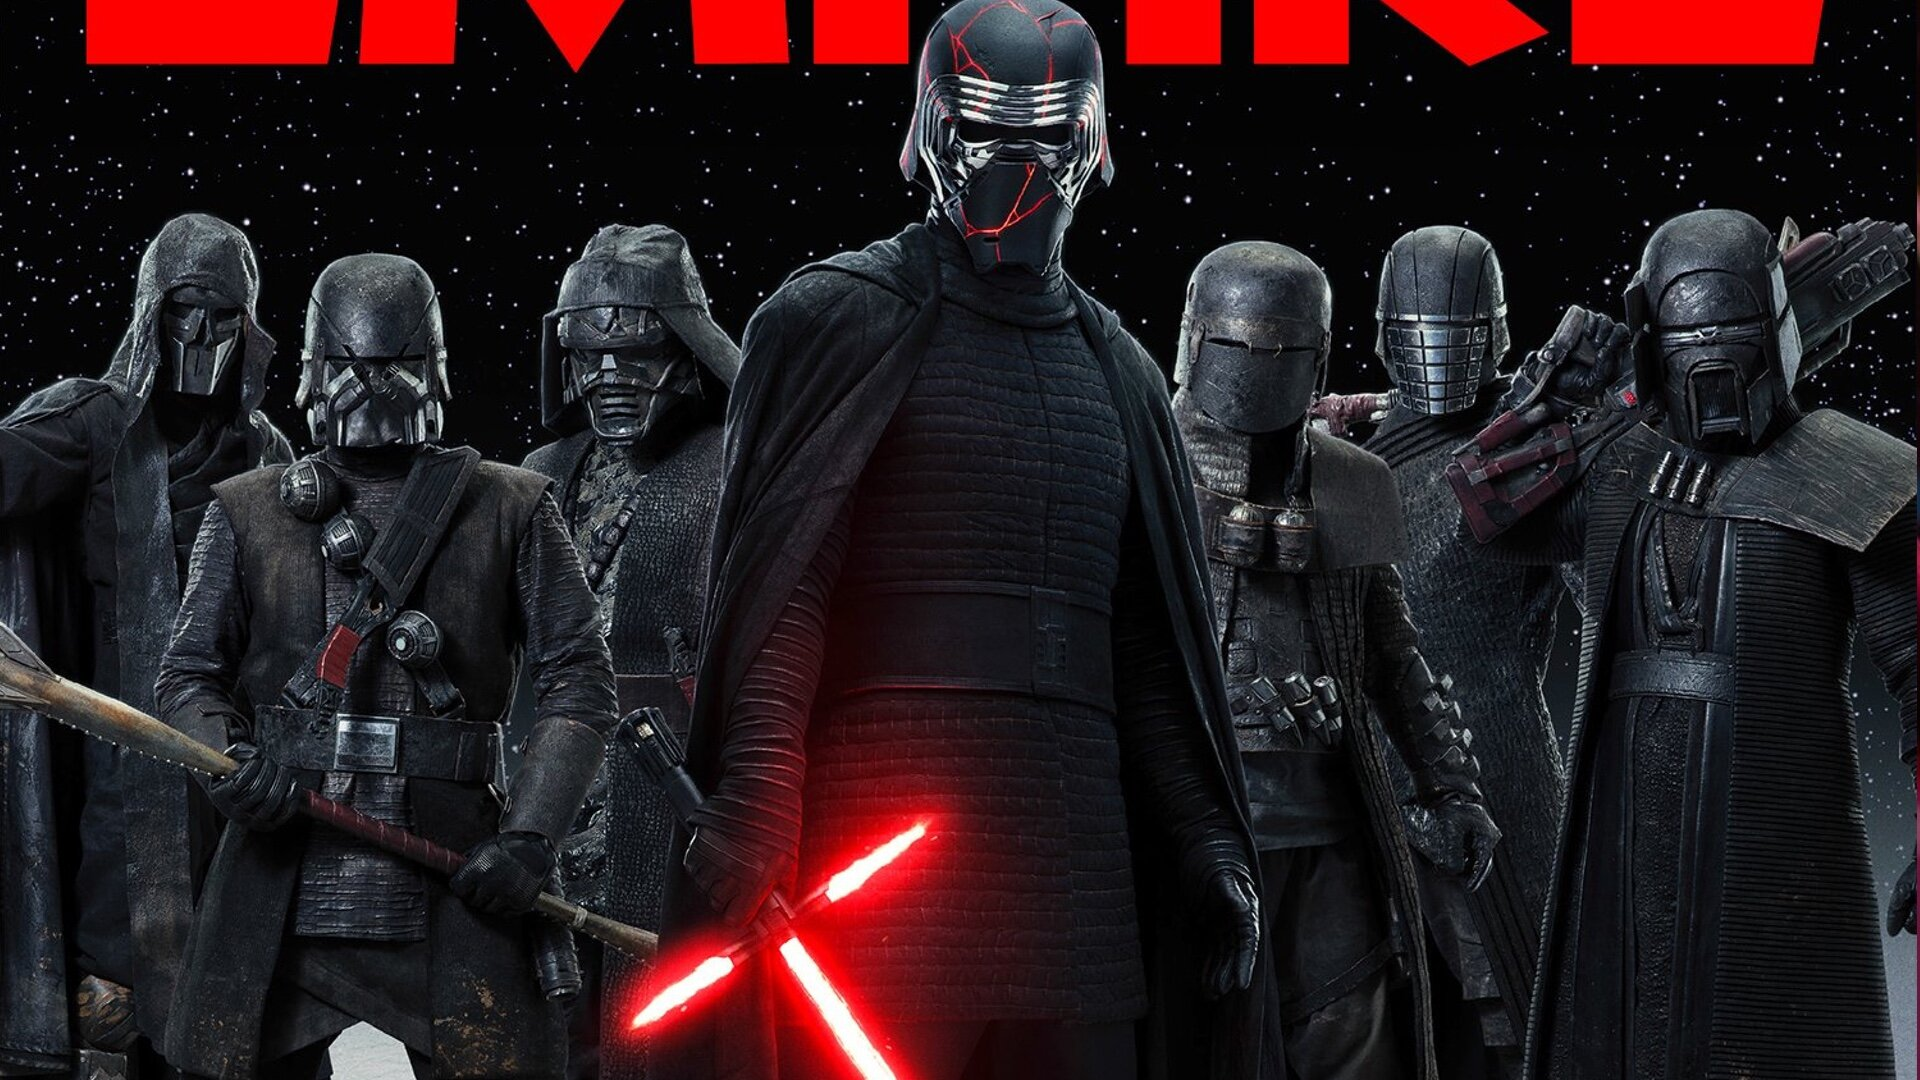 Empire Reveals Cool Set Of Star Wars The Rise Of Skywalker Magazine Covers Geektyrant